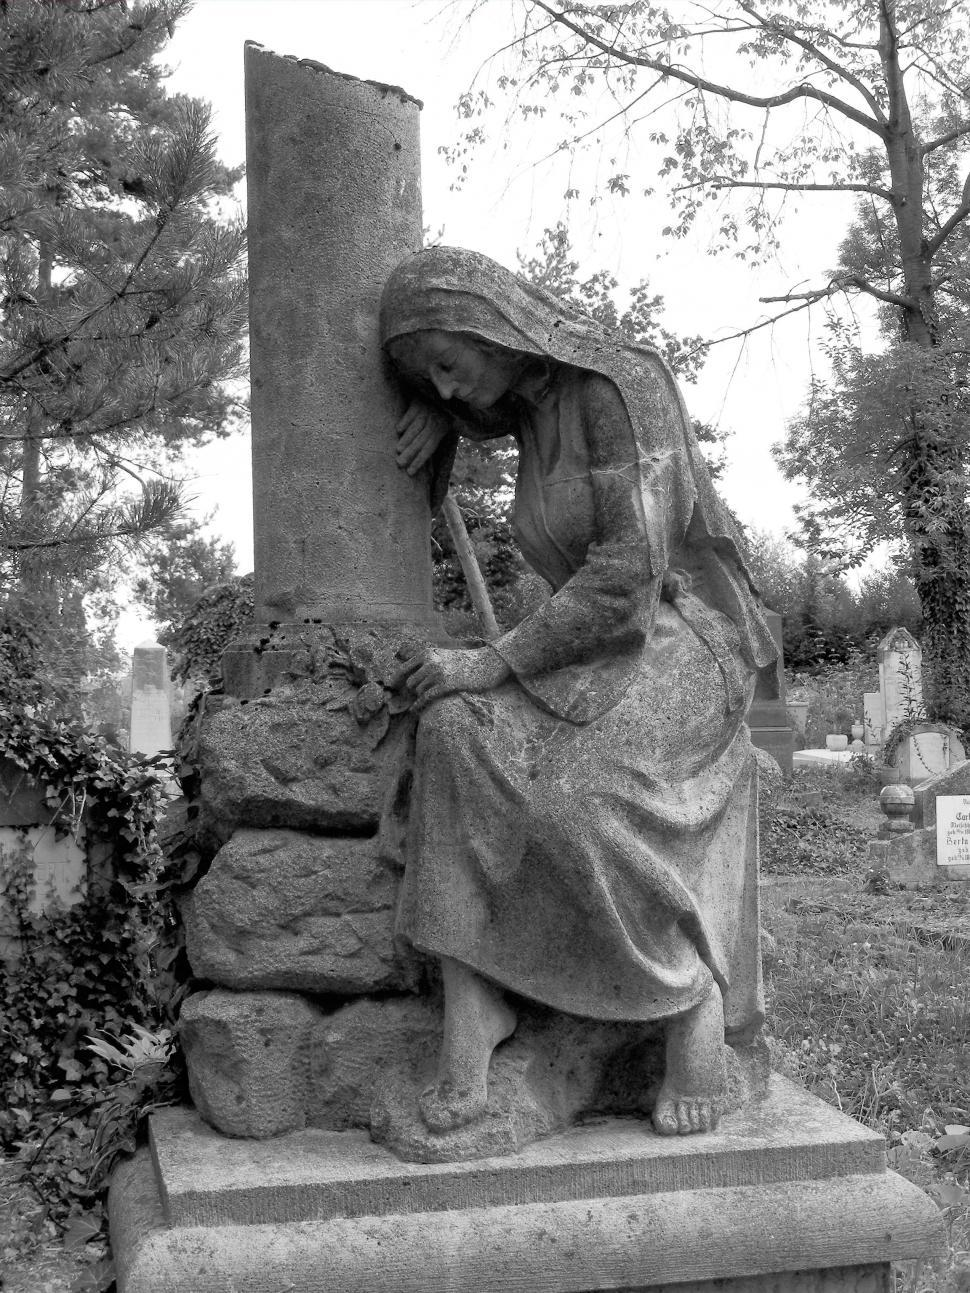 Download Free Stock HD Photo of Cemetery scene With grave stones black & white image Online